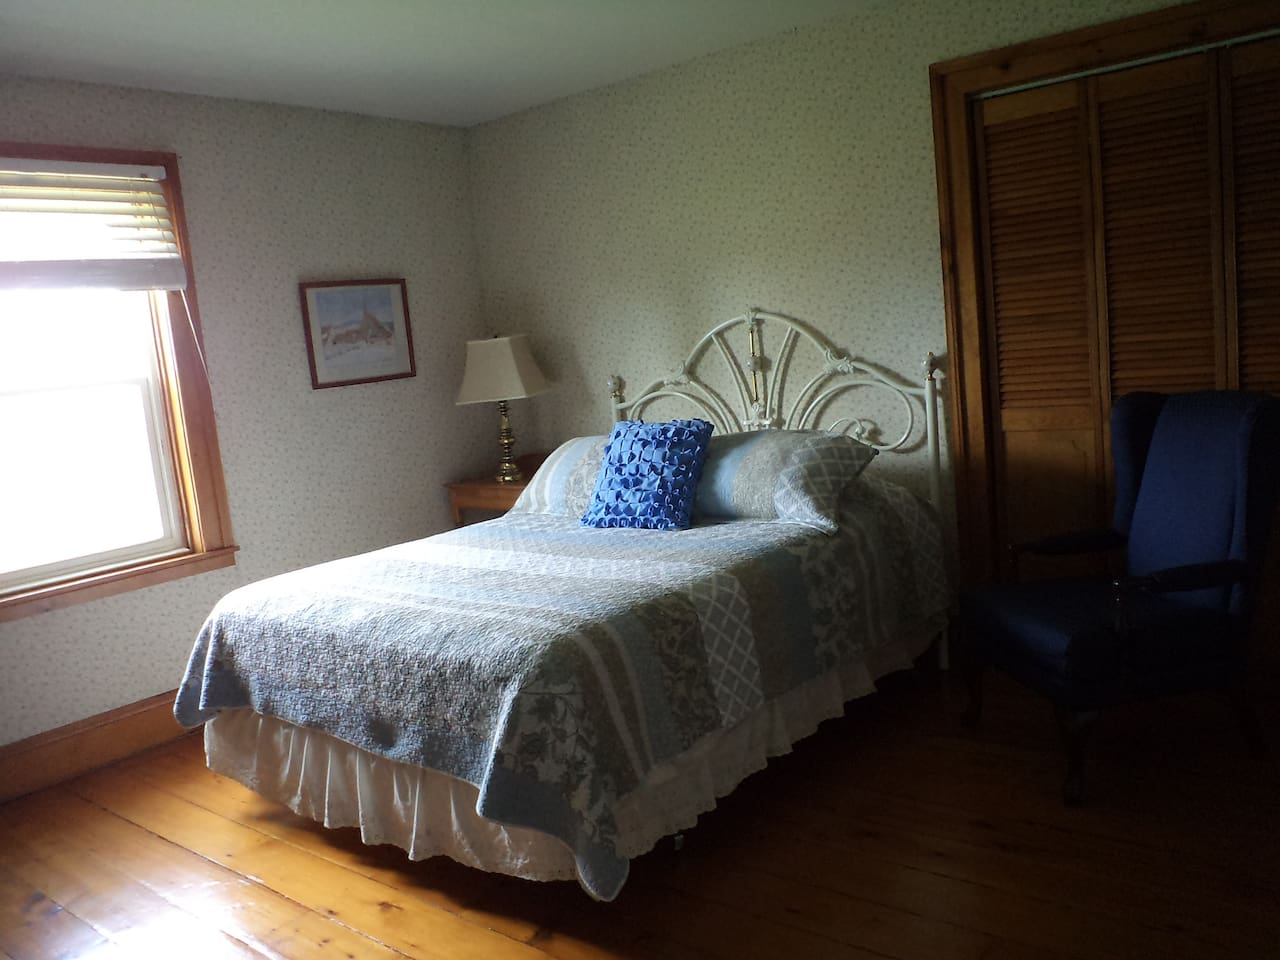 Private spacious room with a comfortable queen size bed.